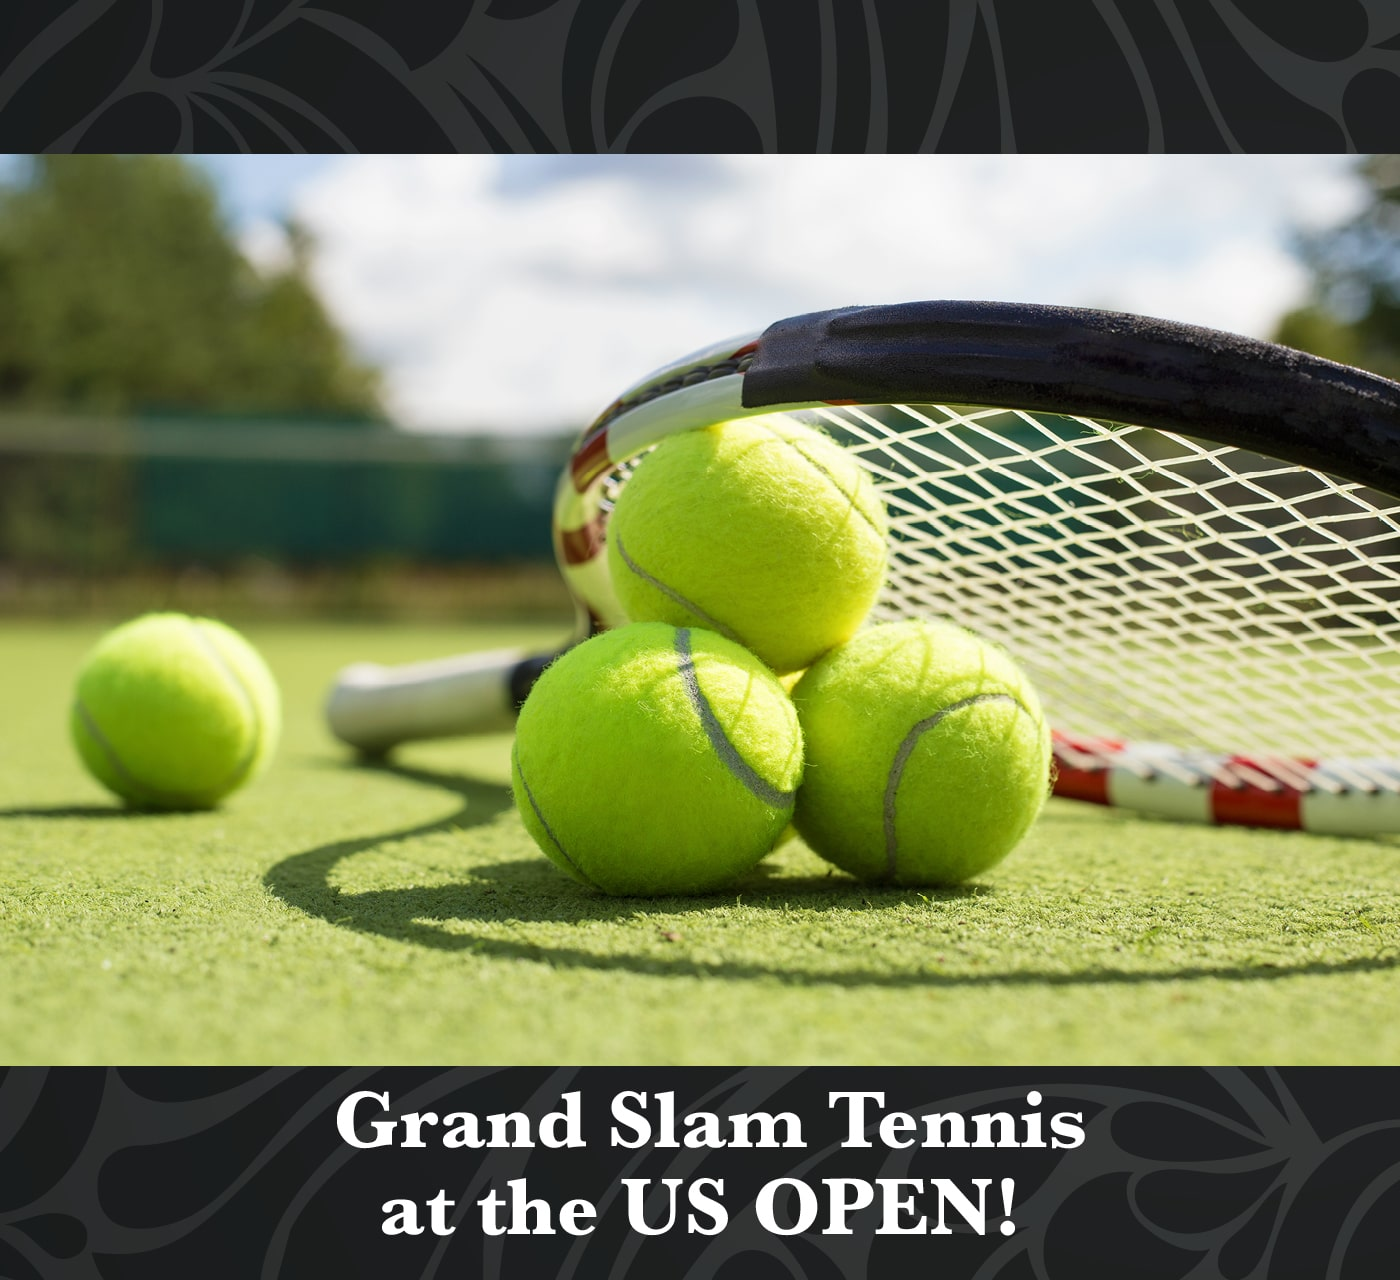 Grand Slam Tennis Raffle Package